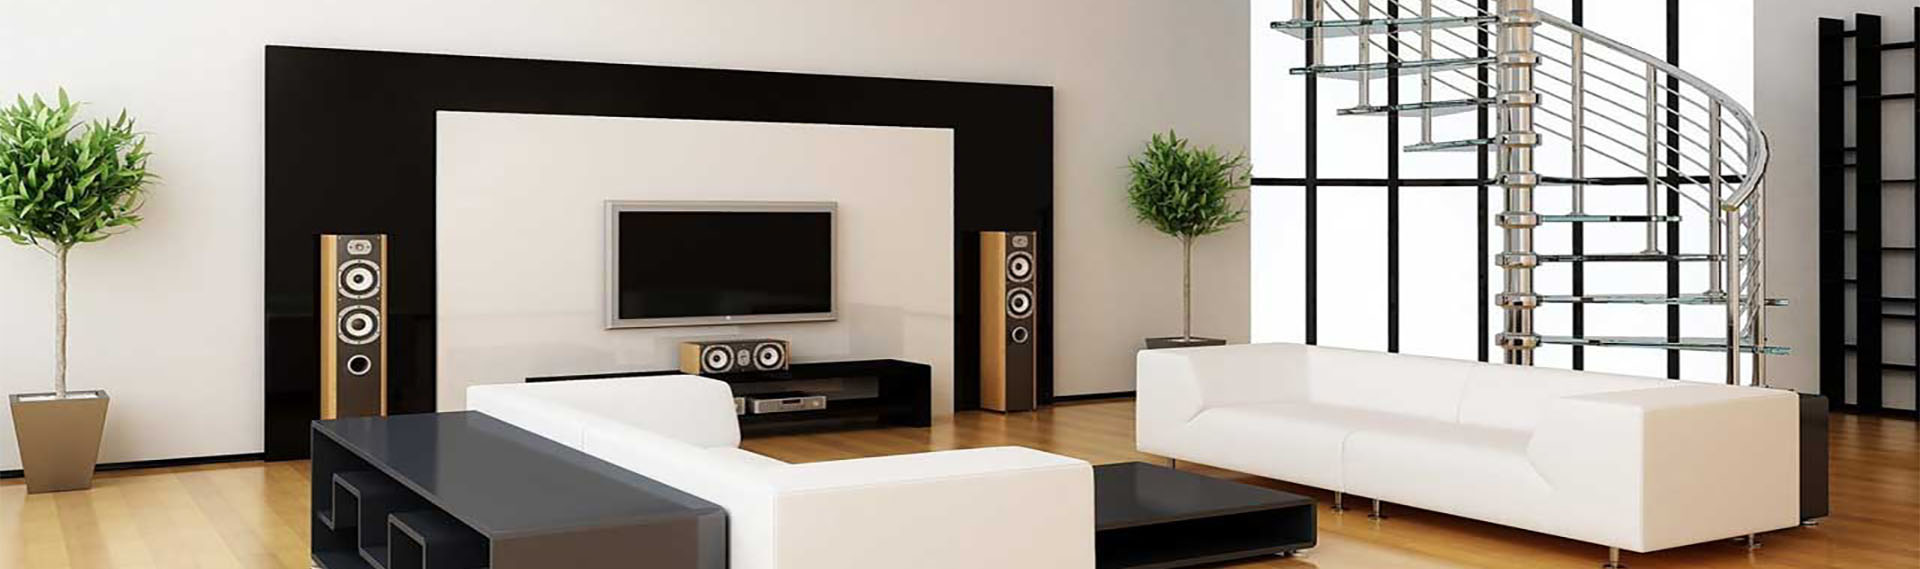 Audio Residencial